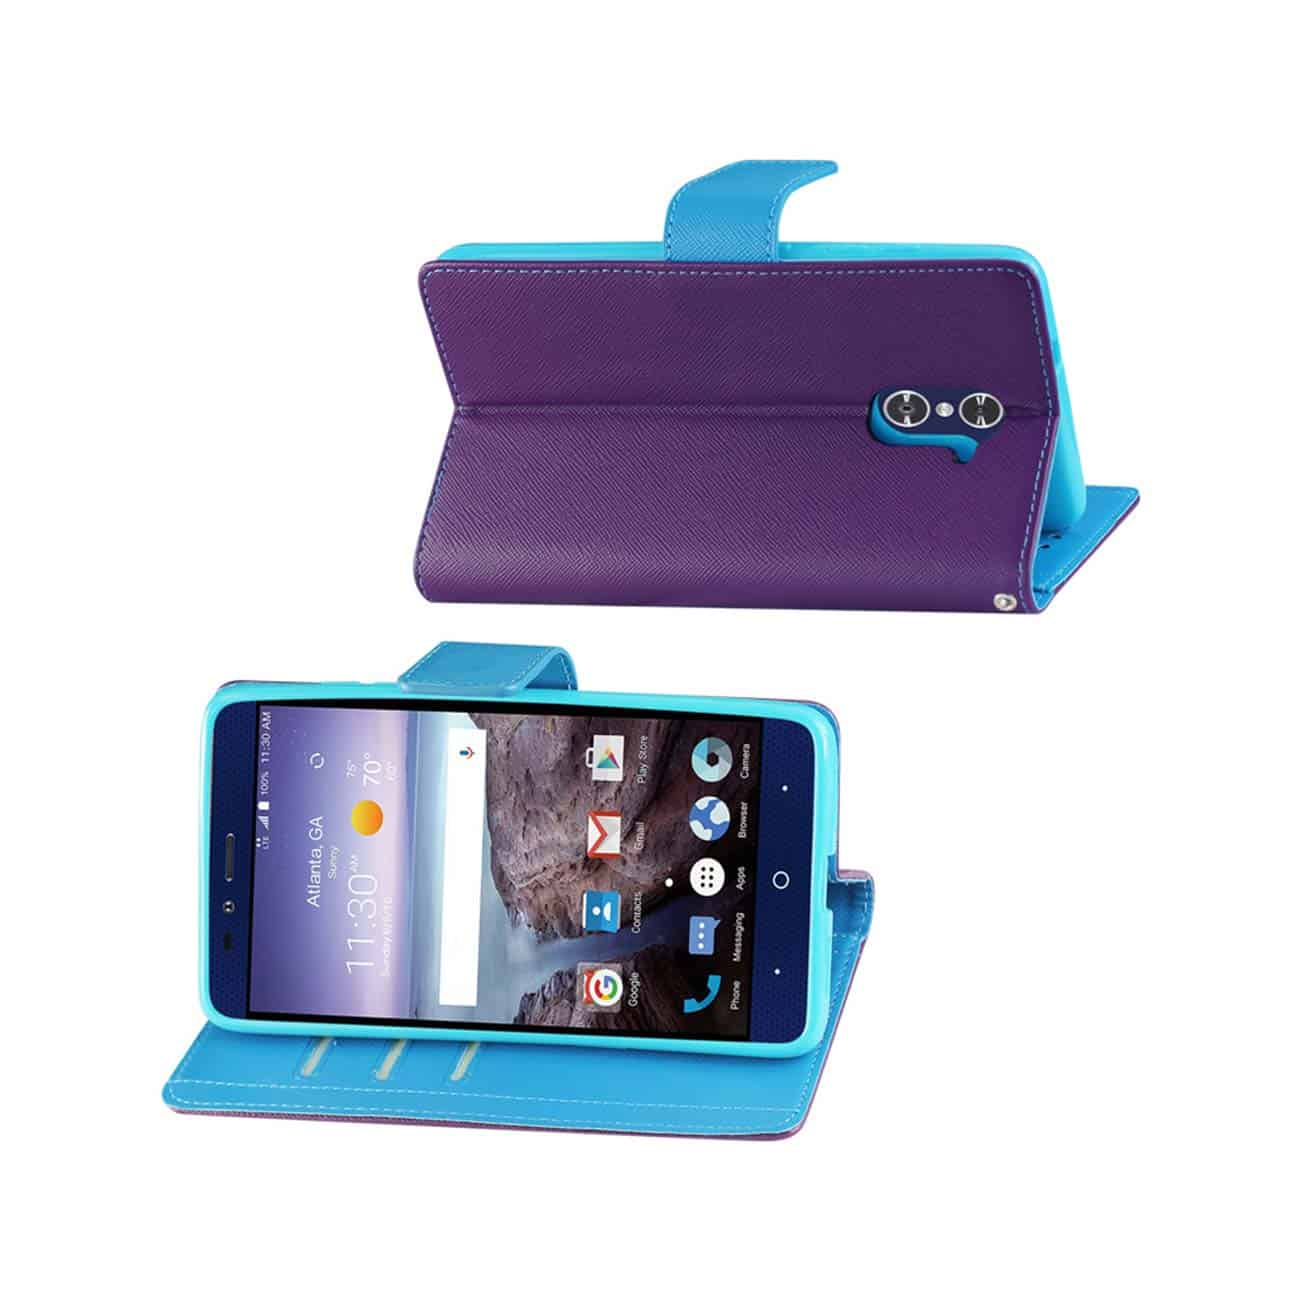 ZTE GRAND X MAX 2 3-IN-1 WALLET CASE IN PURPLE